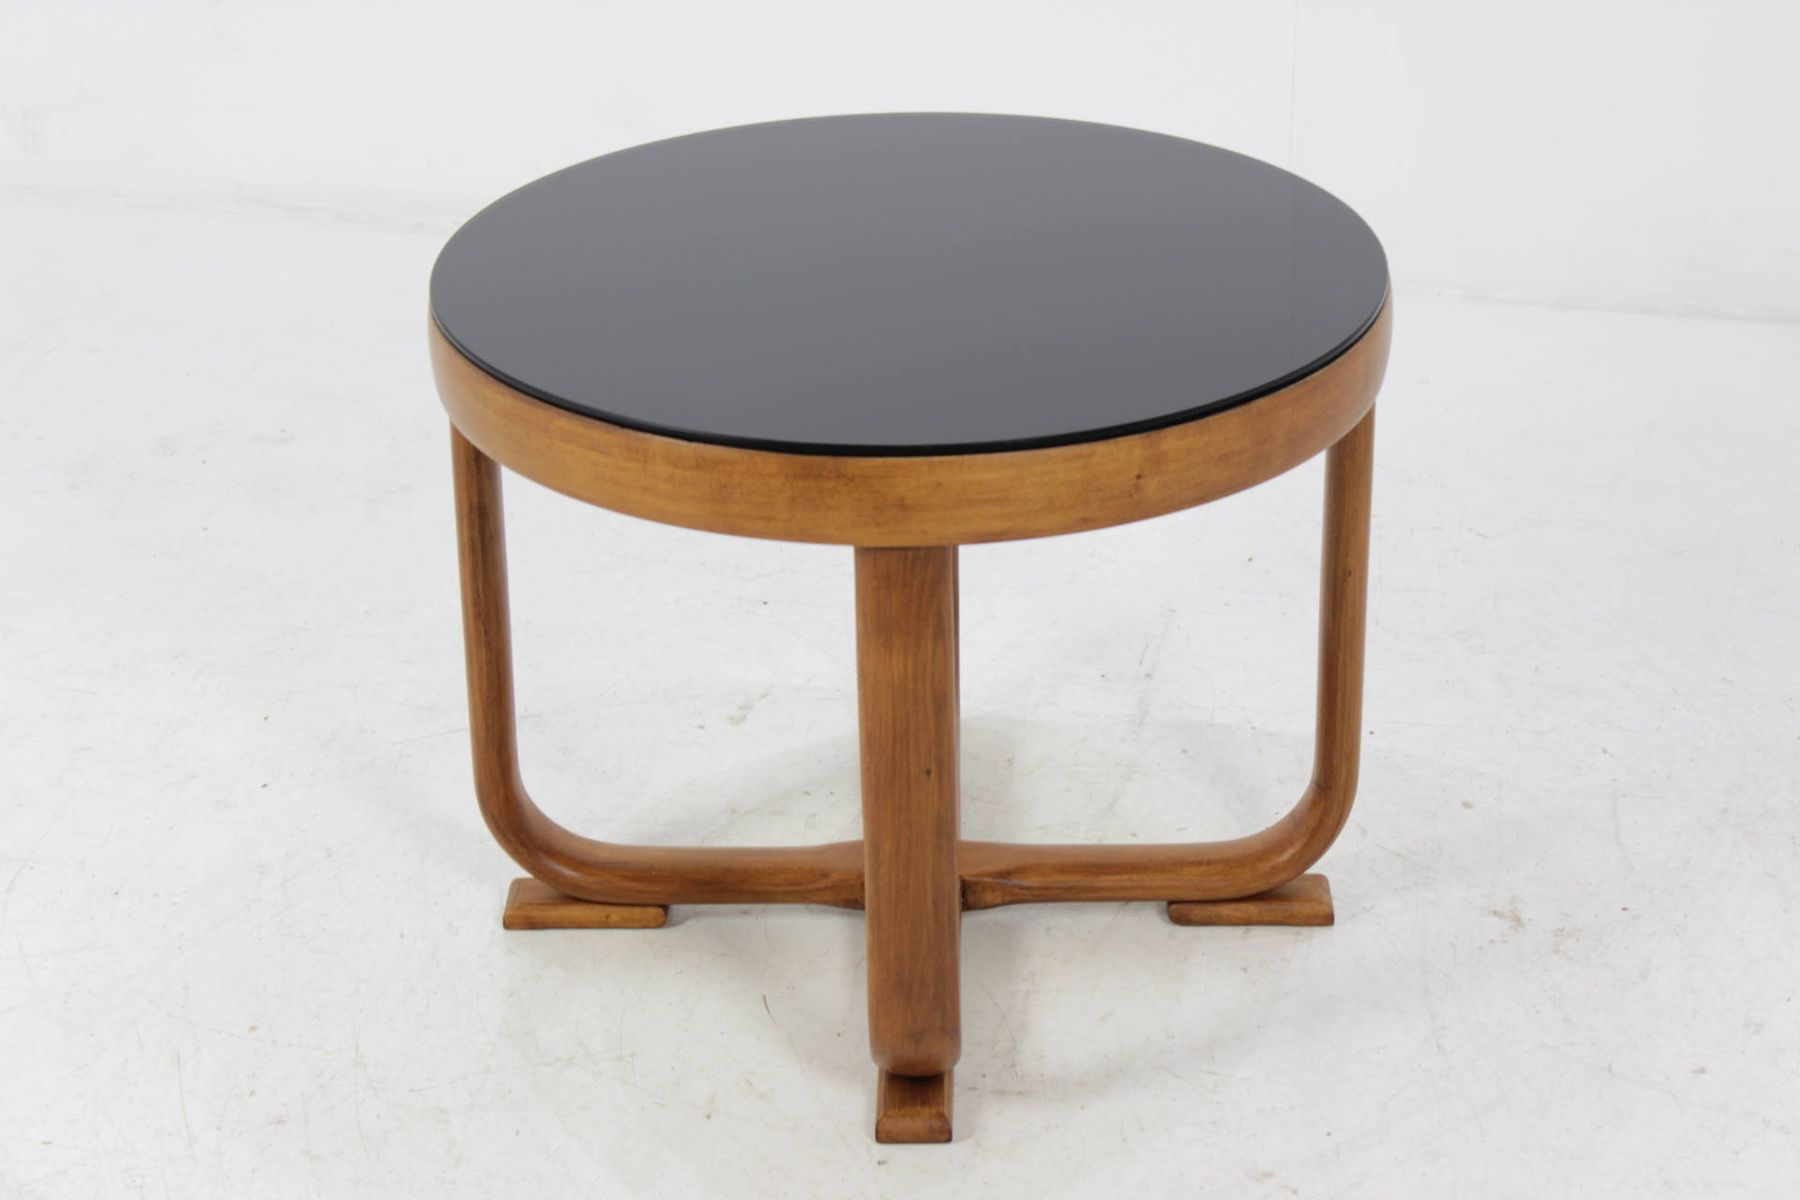 Art deco beech bentwood coffee table 1940s for sale at pamono for Beech coffee table